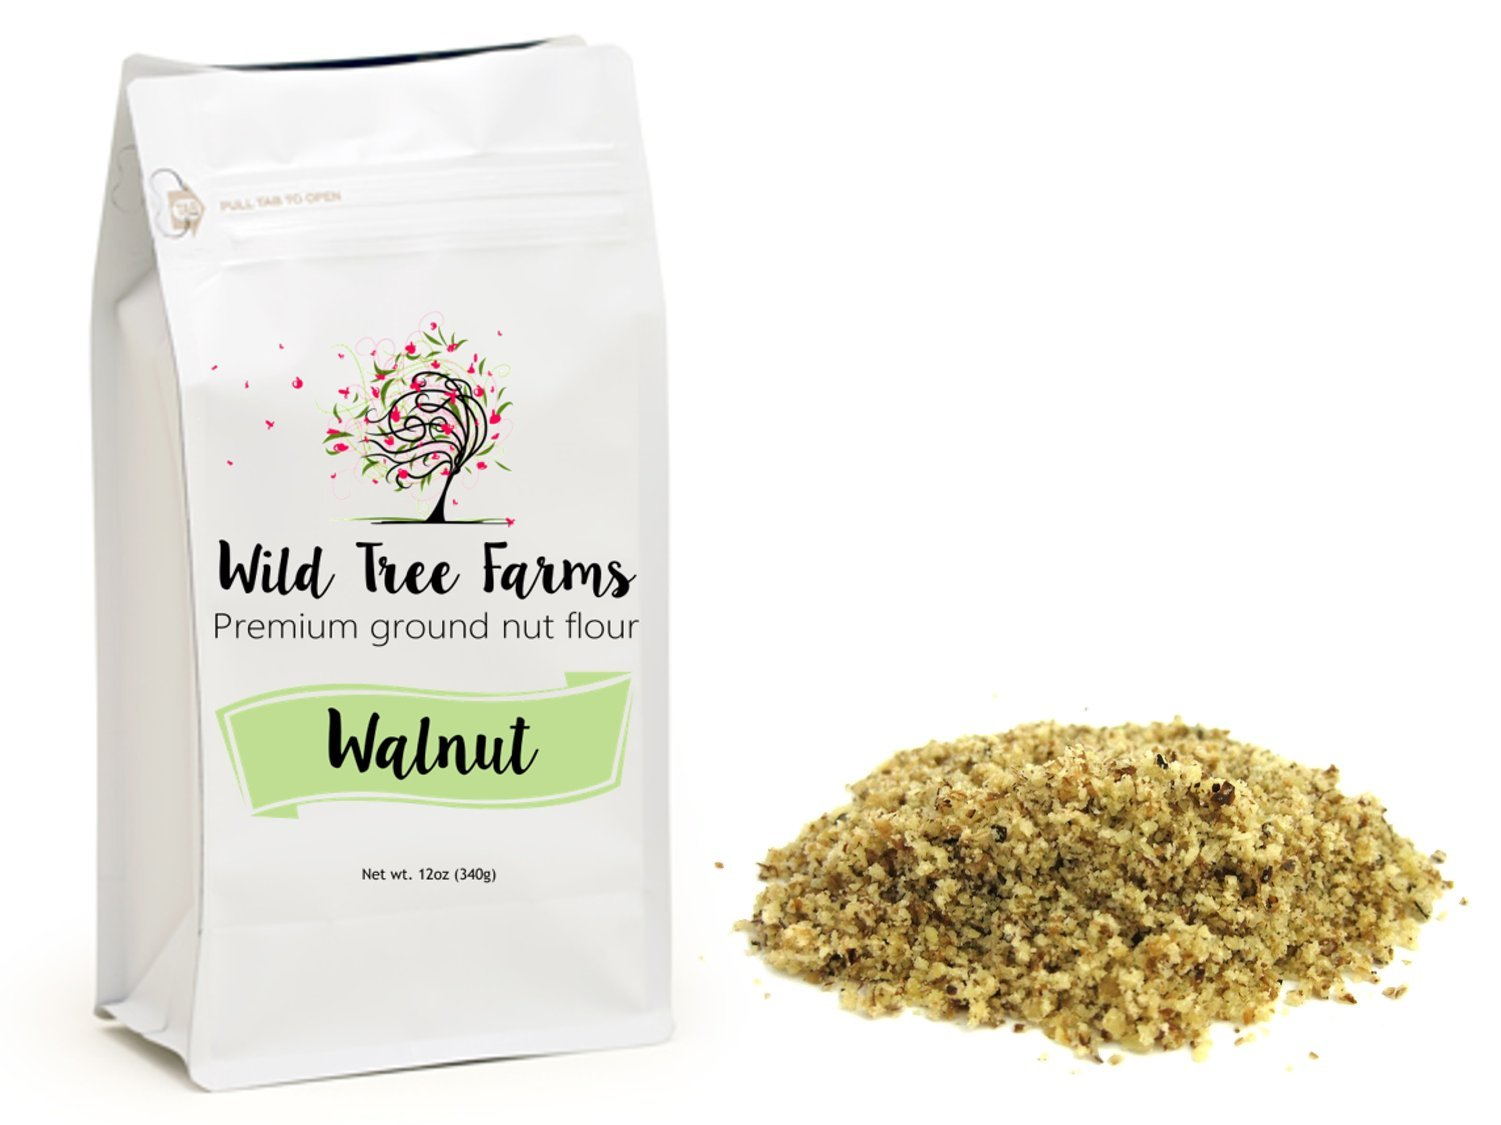 Wild Tree Farms Premium Gluten-free, Grain-free, Paleo Baking Flours: Walnut Flour - 1 Pack